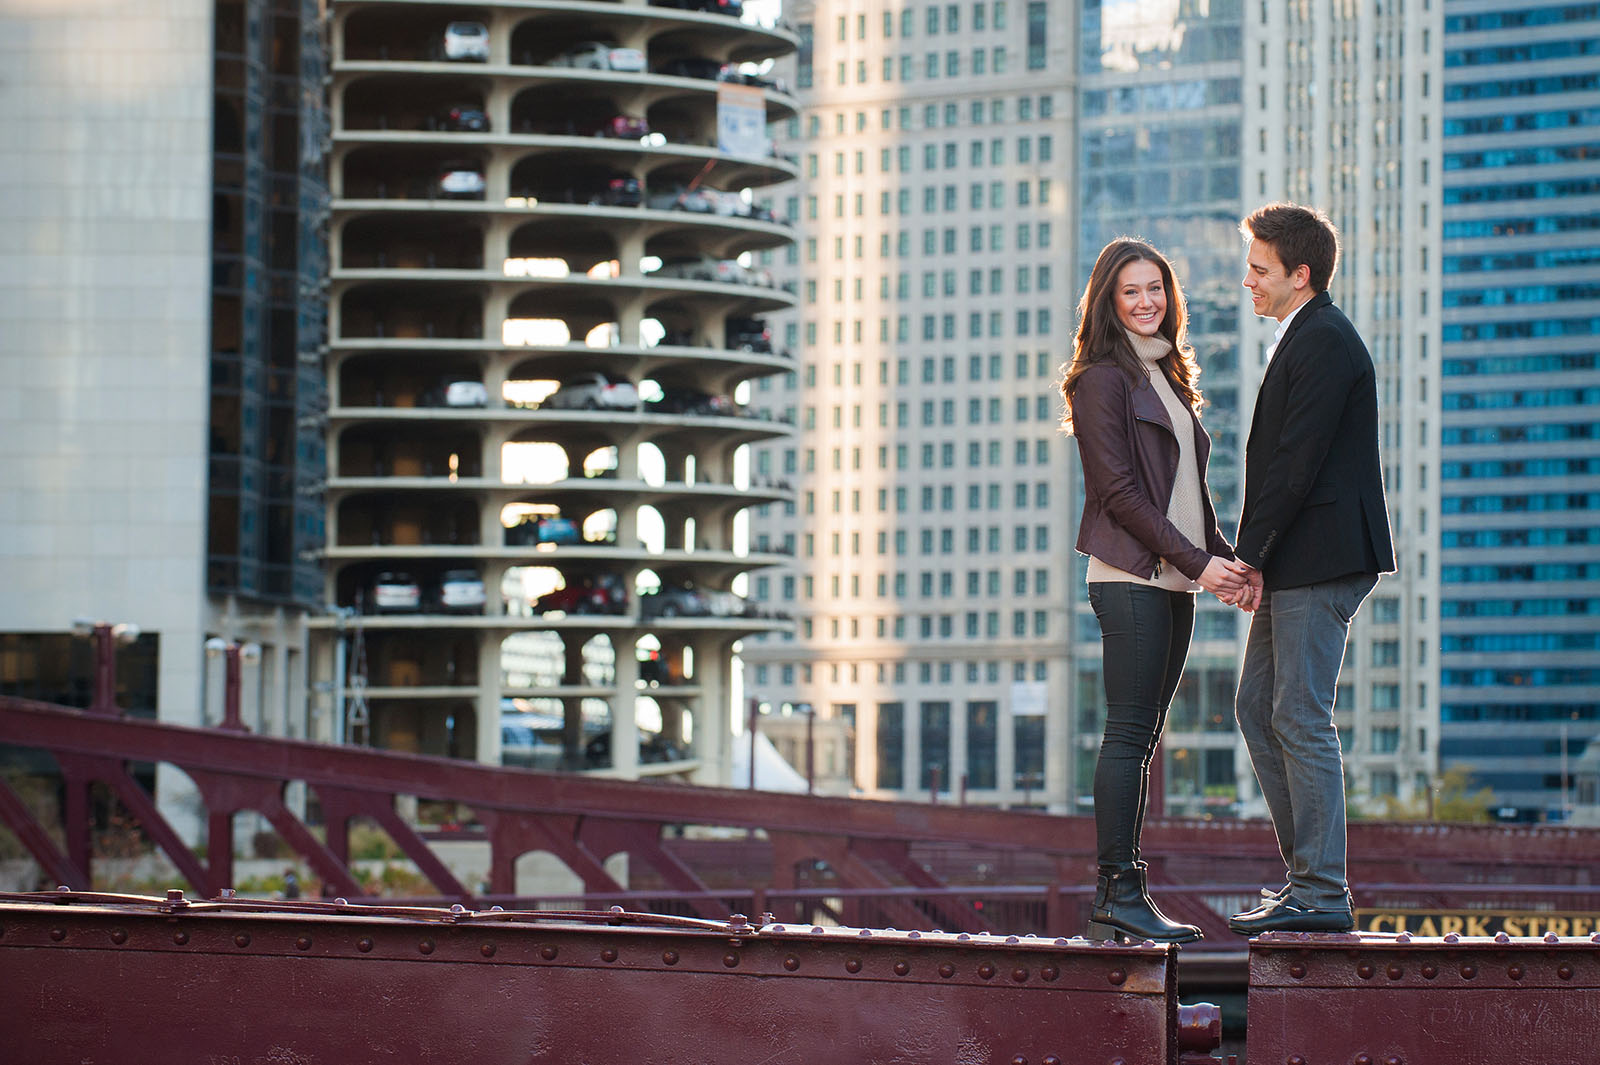 Engagement Session Location in Downtown Chicago on top of Clark Street Bridge by Marina Towers